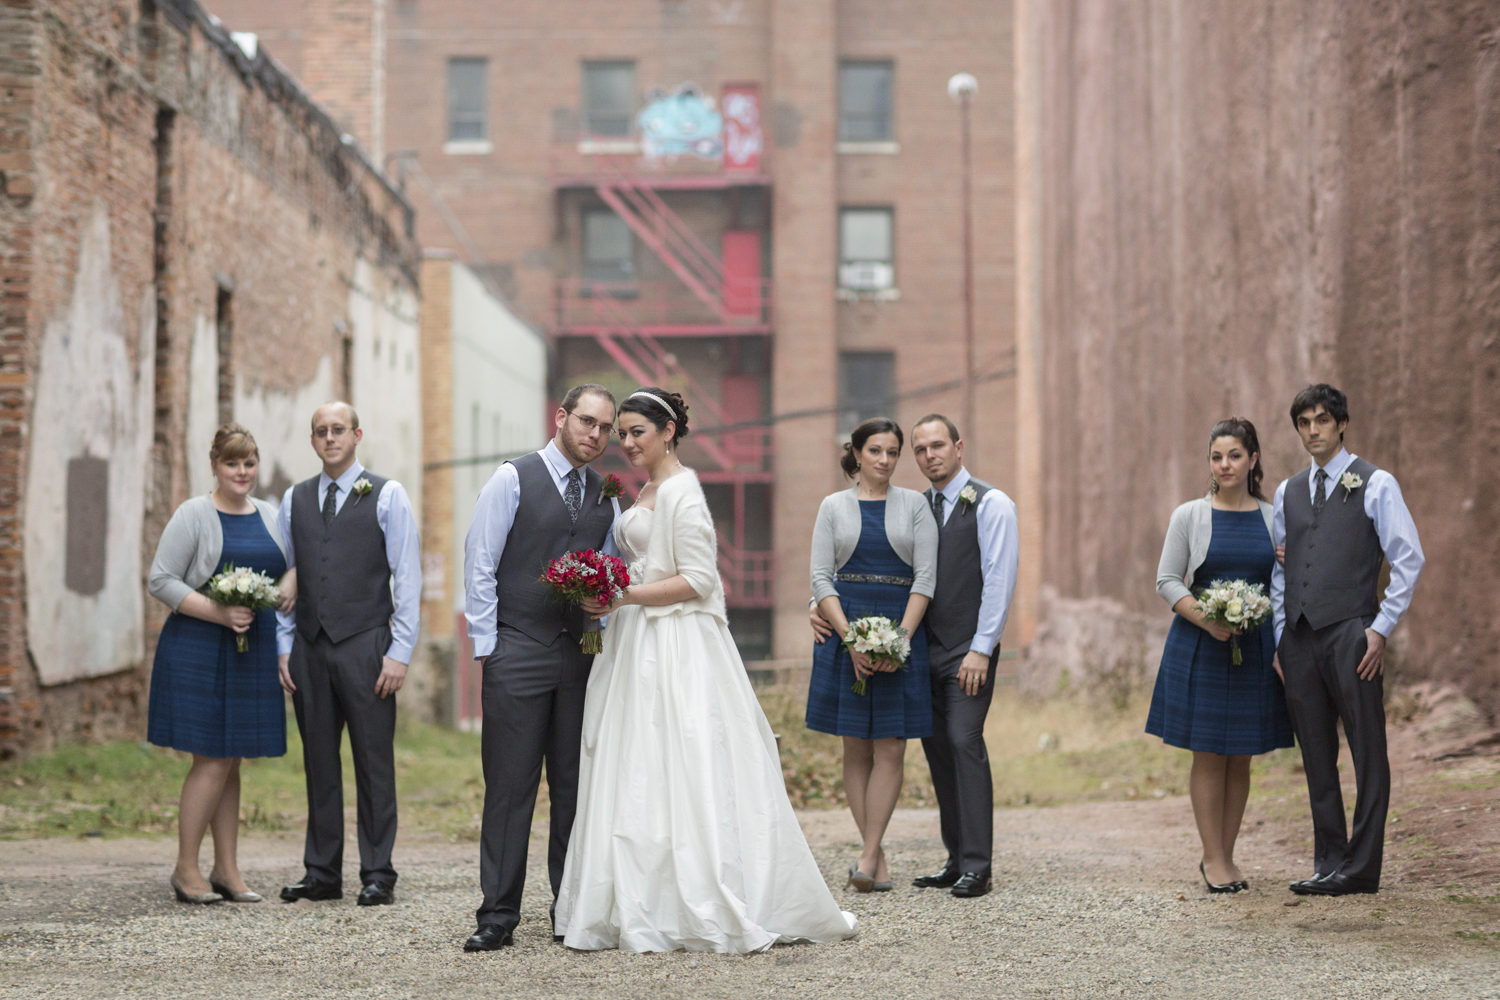 crofoot in michigan wedding bridal party photography